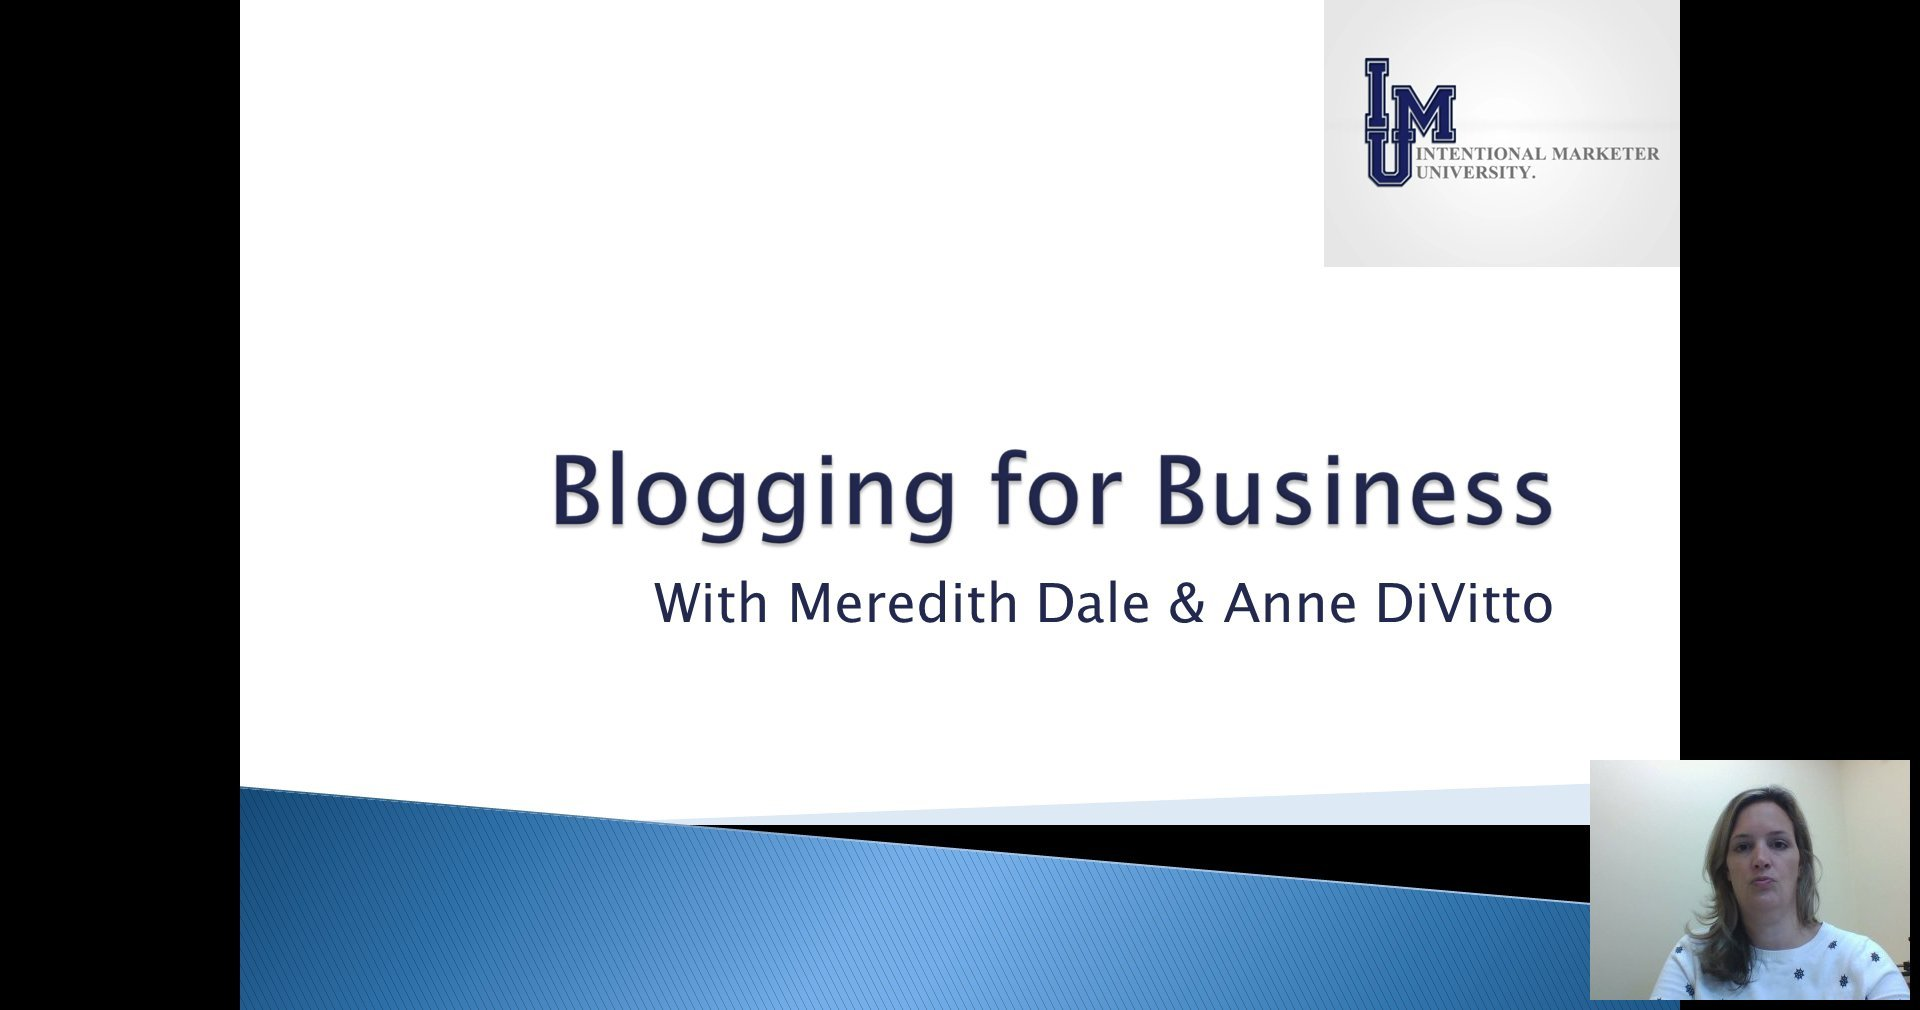 [Screencast: Blogging For Business]